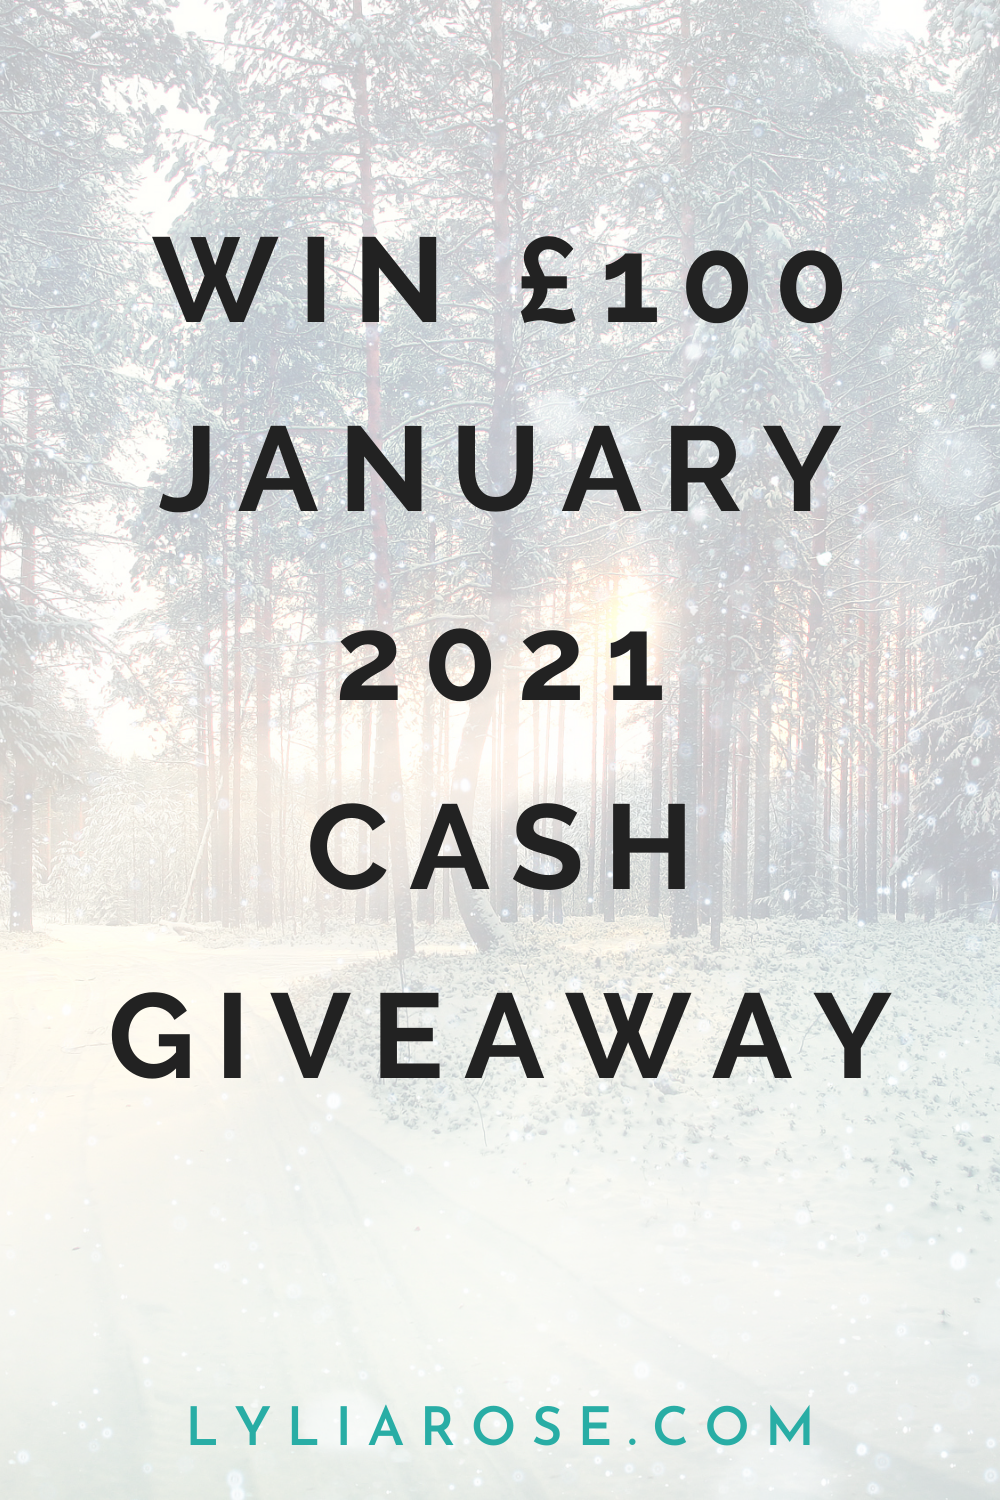 jANUARY 2021 CASH GIVEAWAY